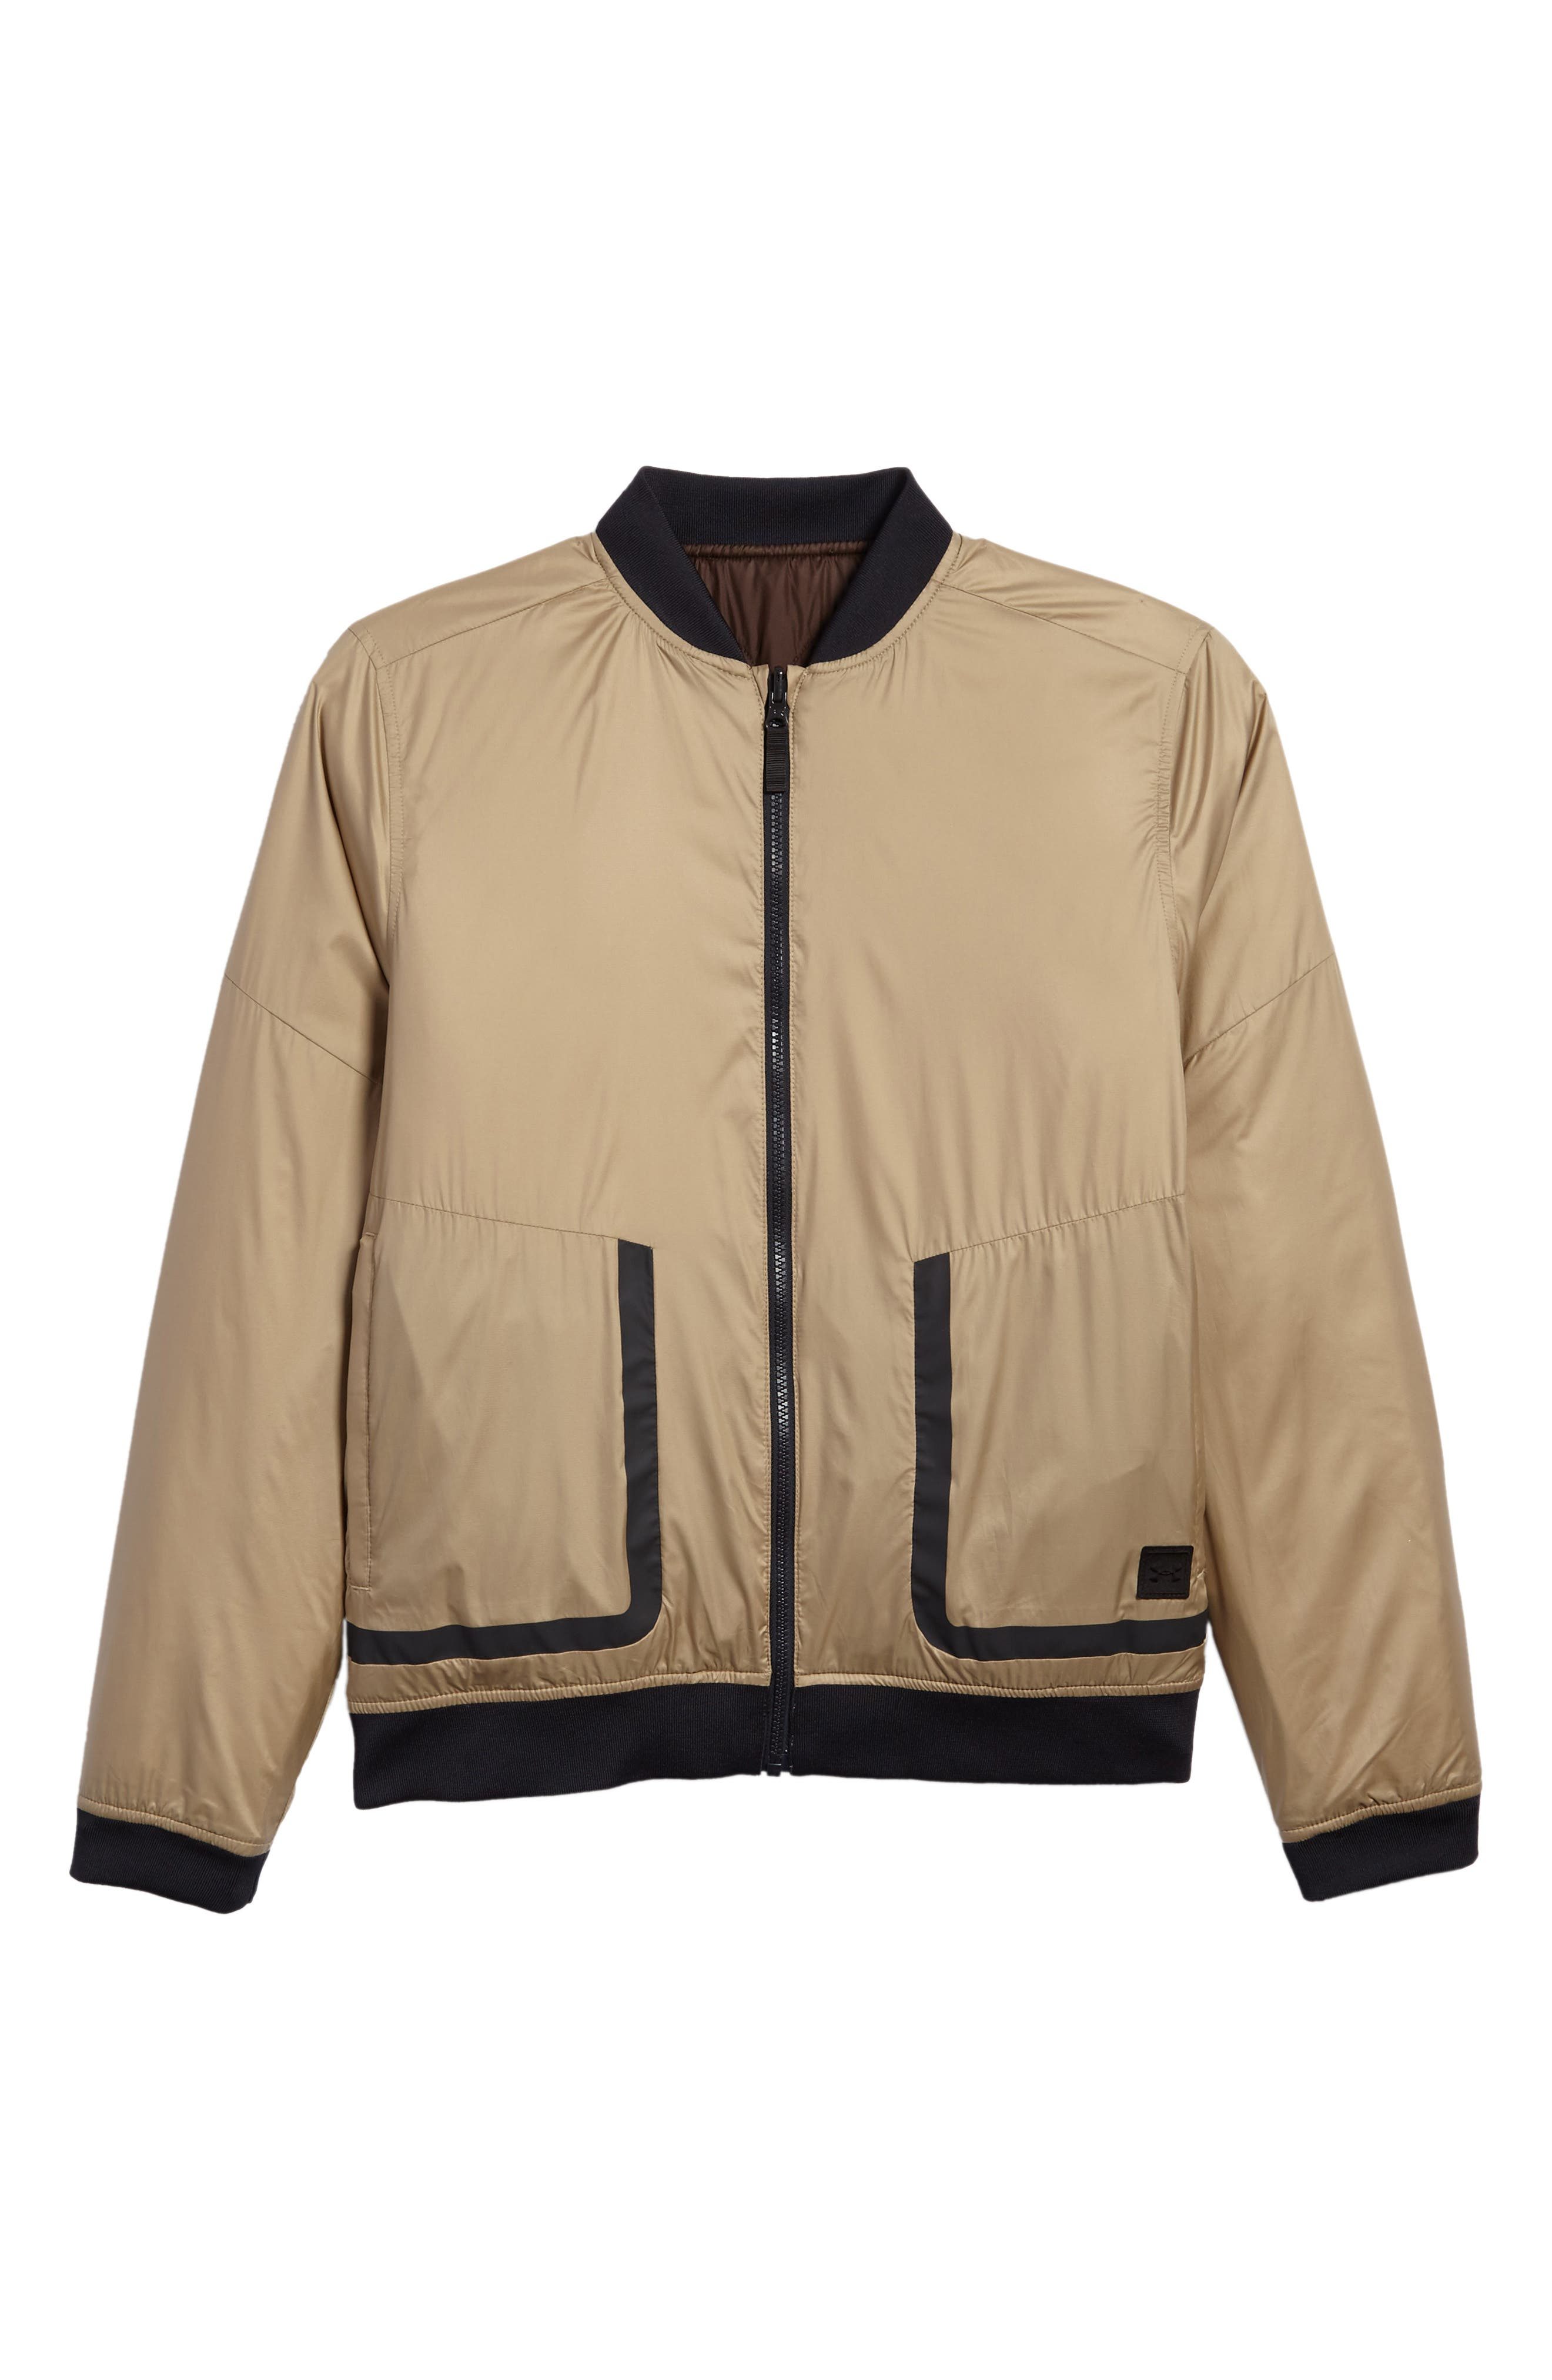 Main Image - Under Armour Sportstyle Reactor Reversible Bomber Jacket